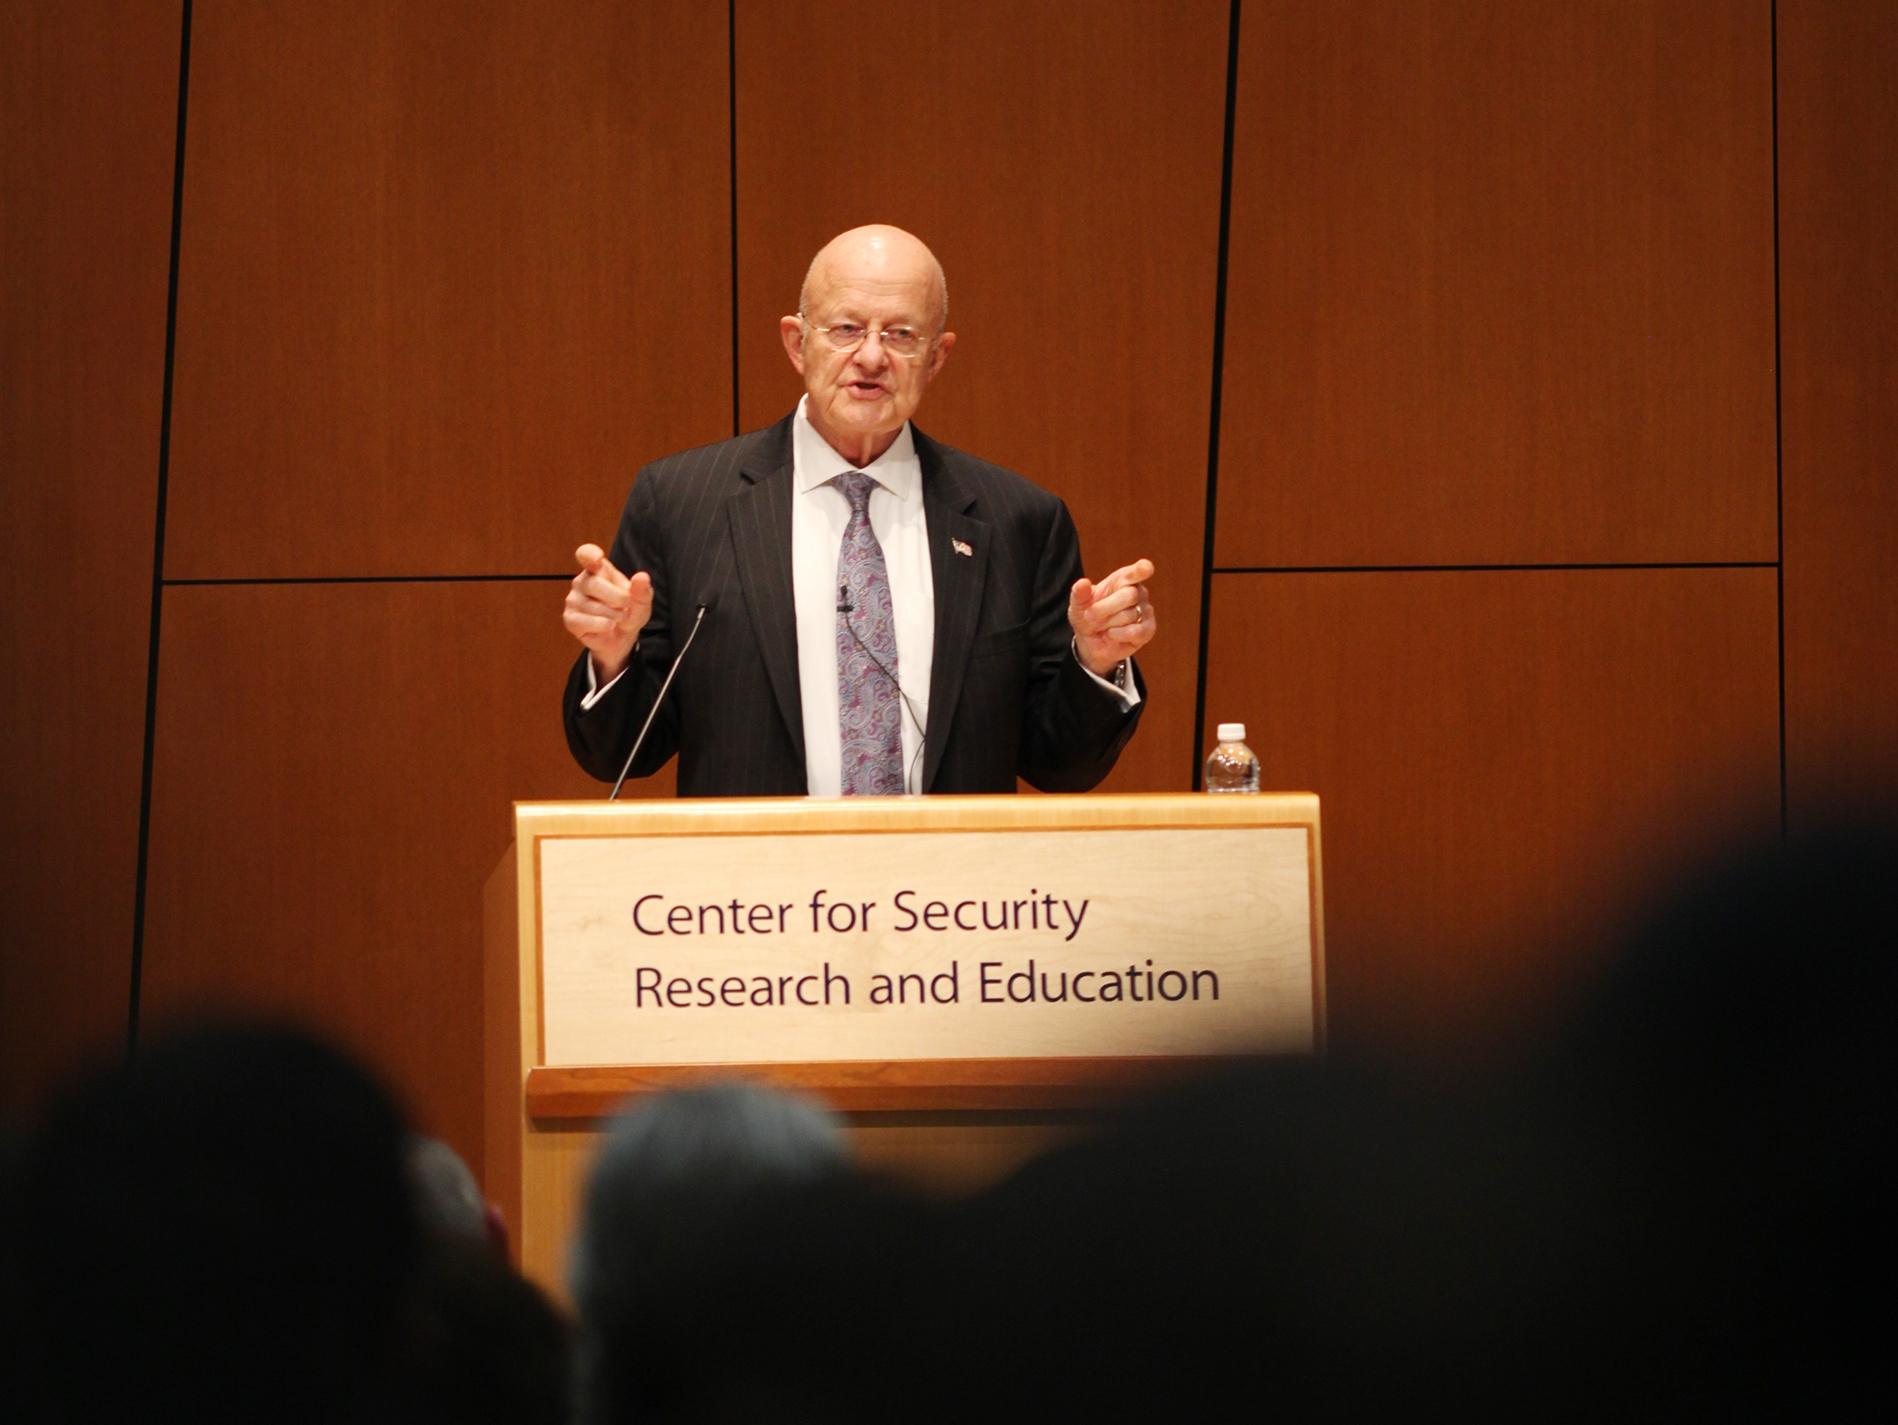 James Clapper speaking